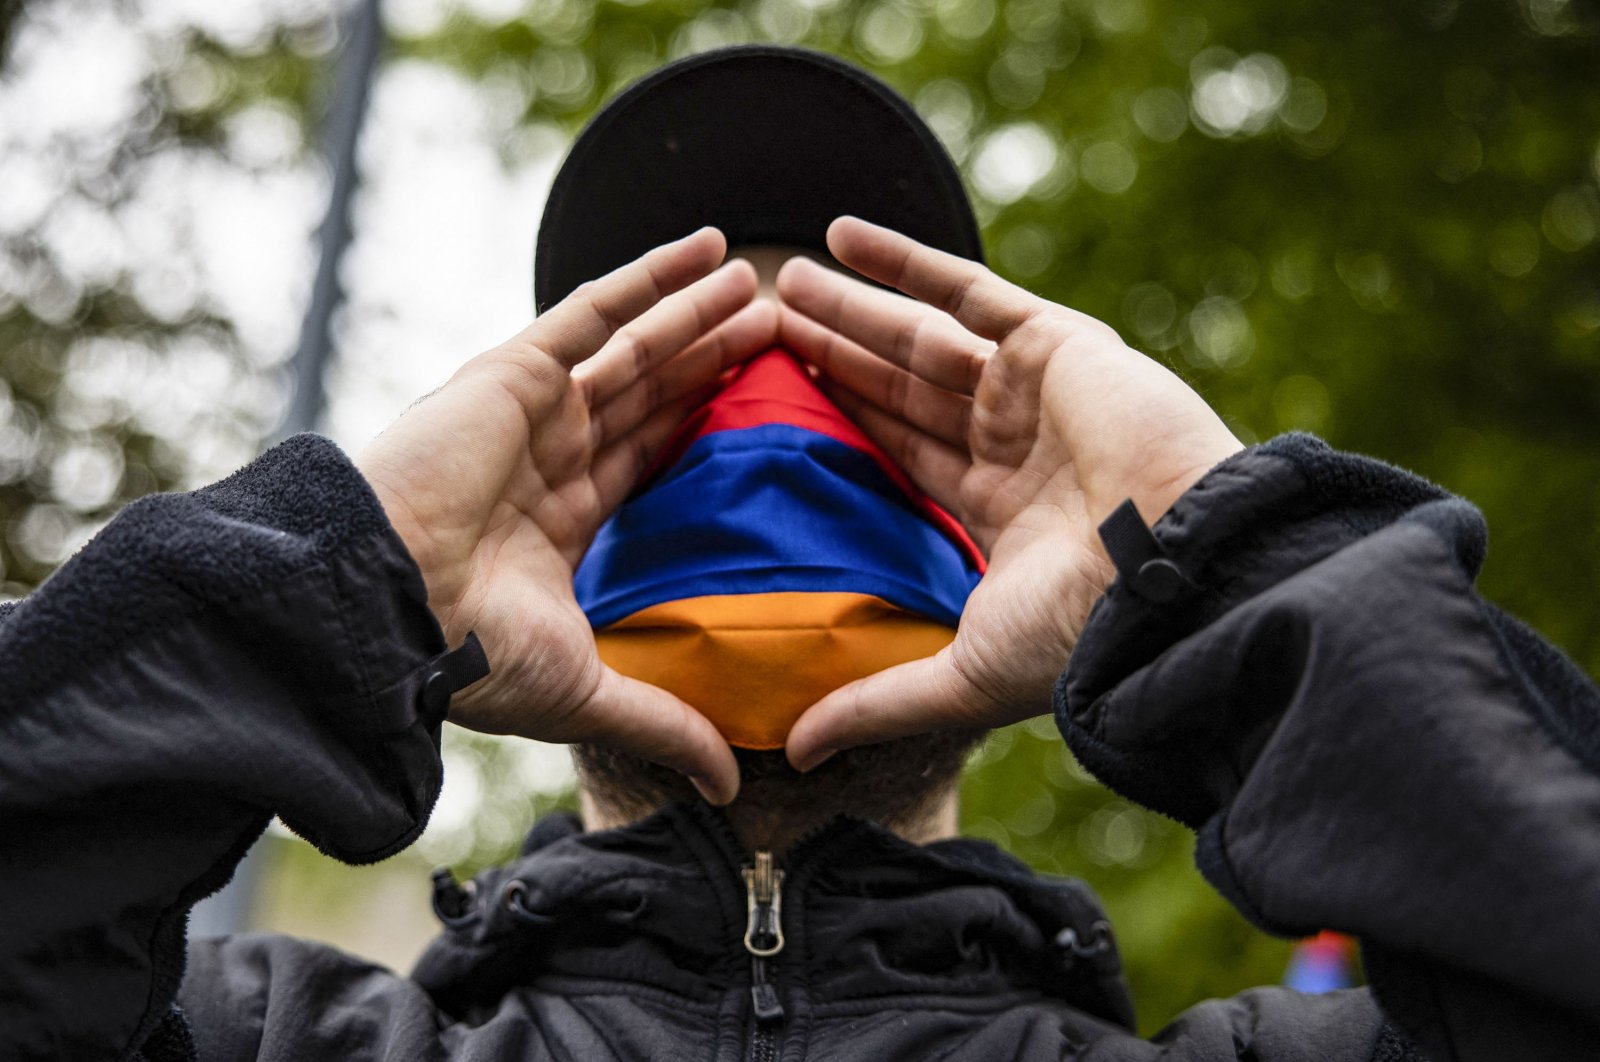 Armenians protest outside of the Turkish Embassy on the 106th anniversary of 1915 events in Washington, DC on April 24, 2021. (AFP)